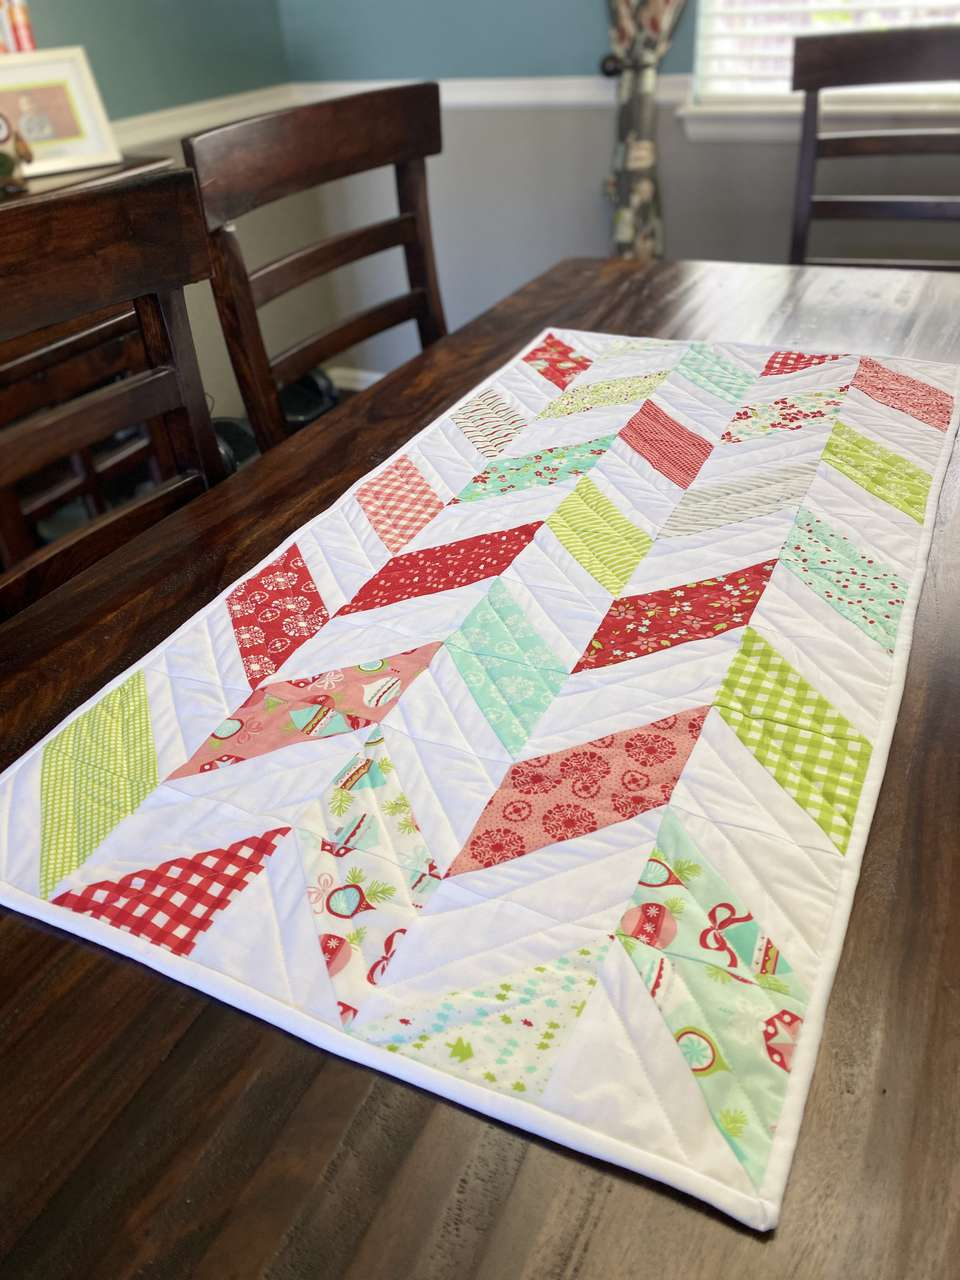 A Christmas table runner